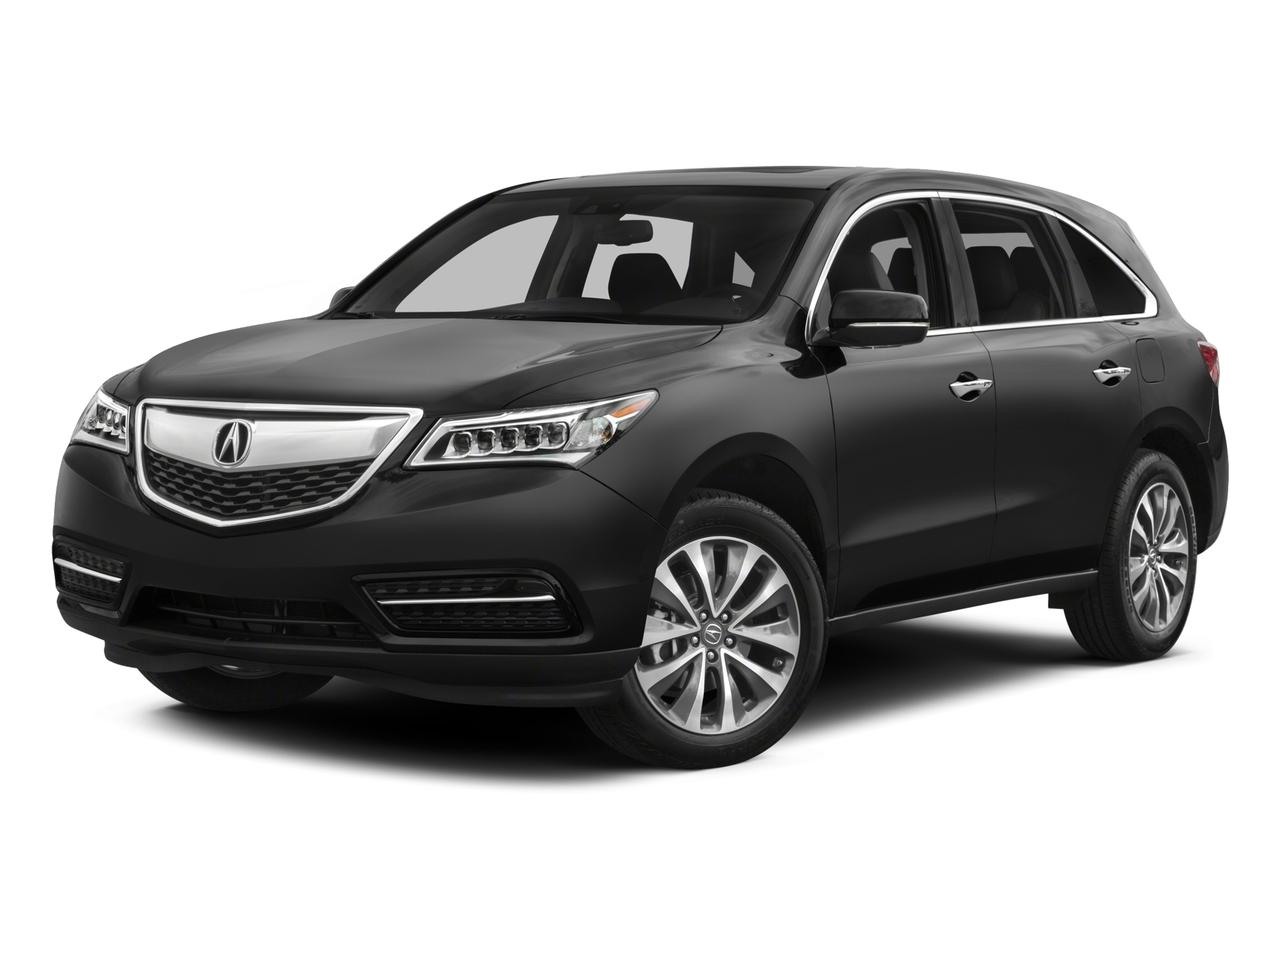 2015 Acura MDX Vehicle Photo in Cary, NC 27511